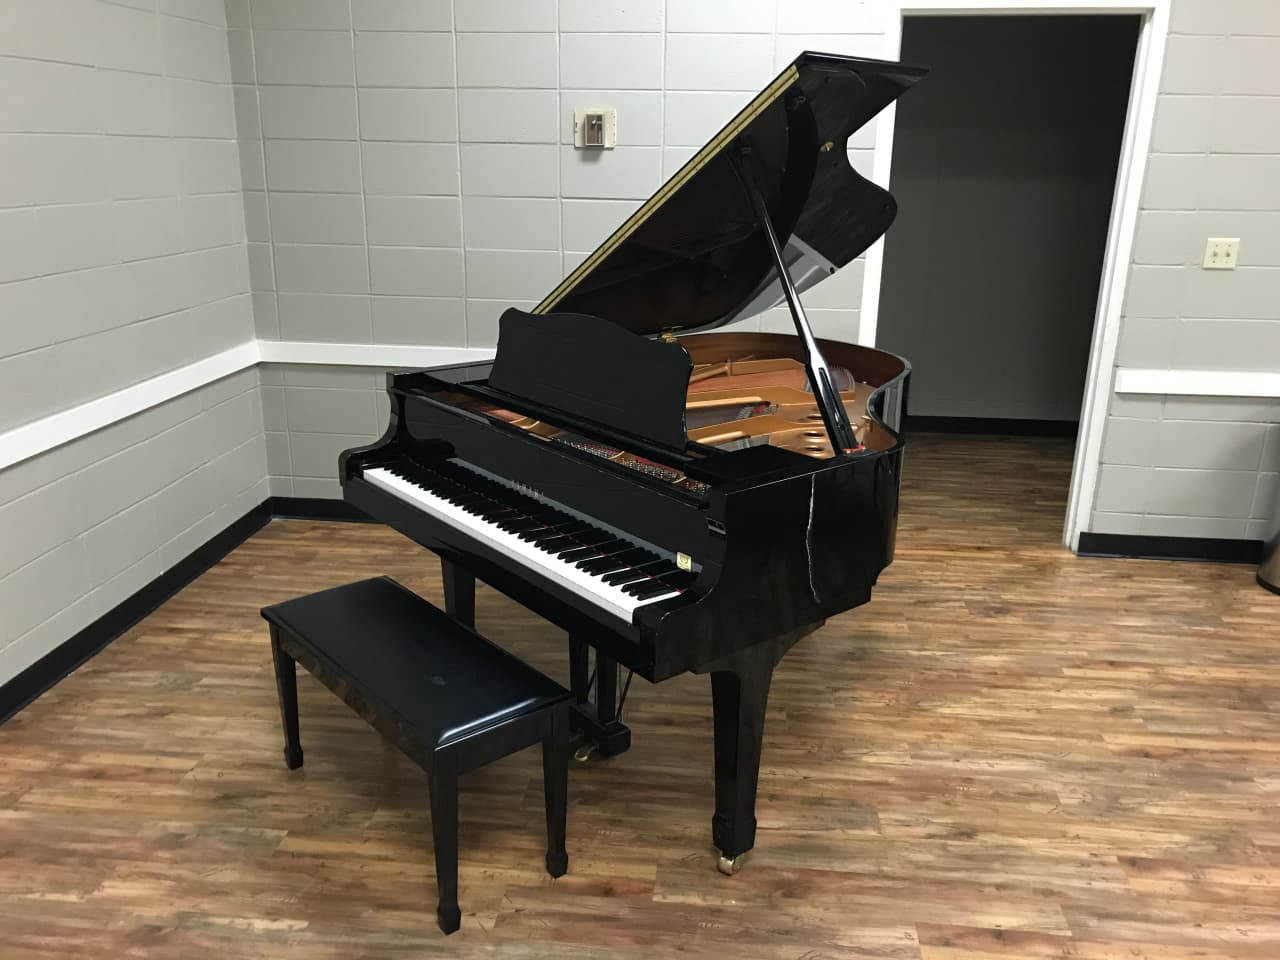 Yamaha baby grand piano conservatory c2 see notes reverb for Price of a yamaha baby grand piano